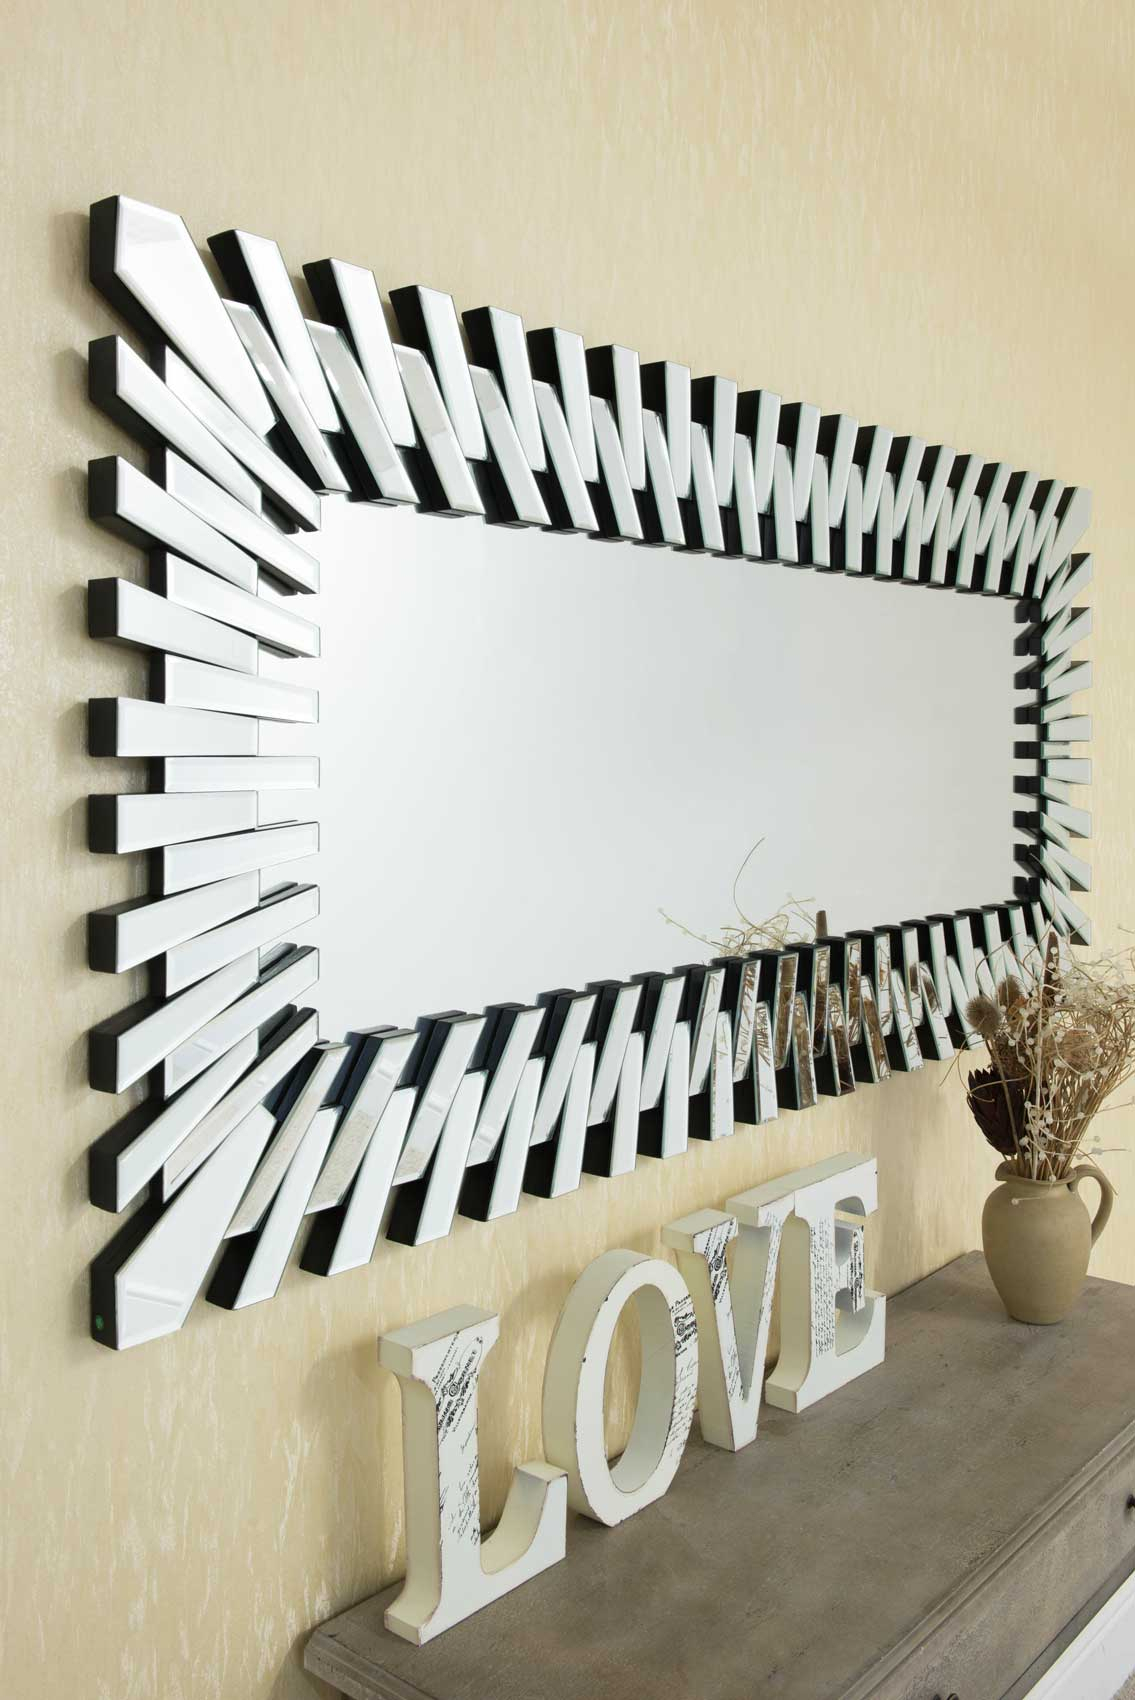 Details About Extra Large Modern Unique 3D Sunburst All Glass Venetian Rectangular Wall Mirror With Regard To Modern Rectangle Wall Mirrors (View 2 of 20)